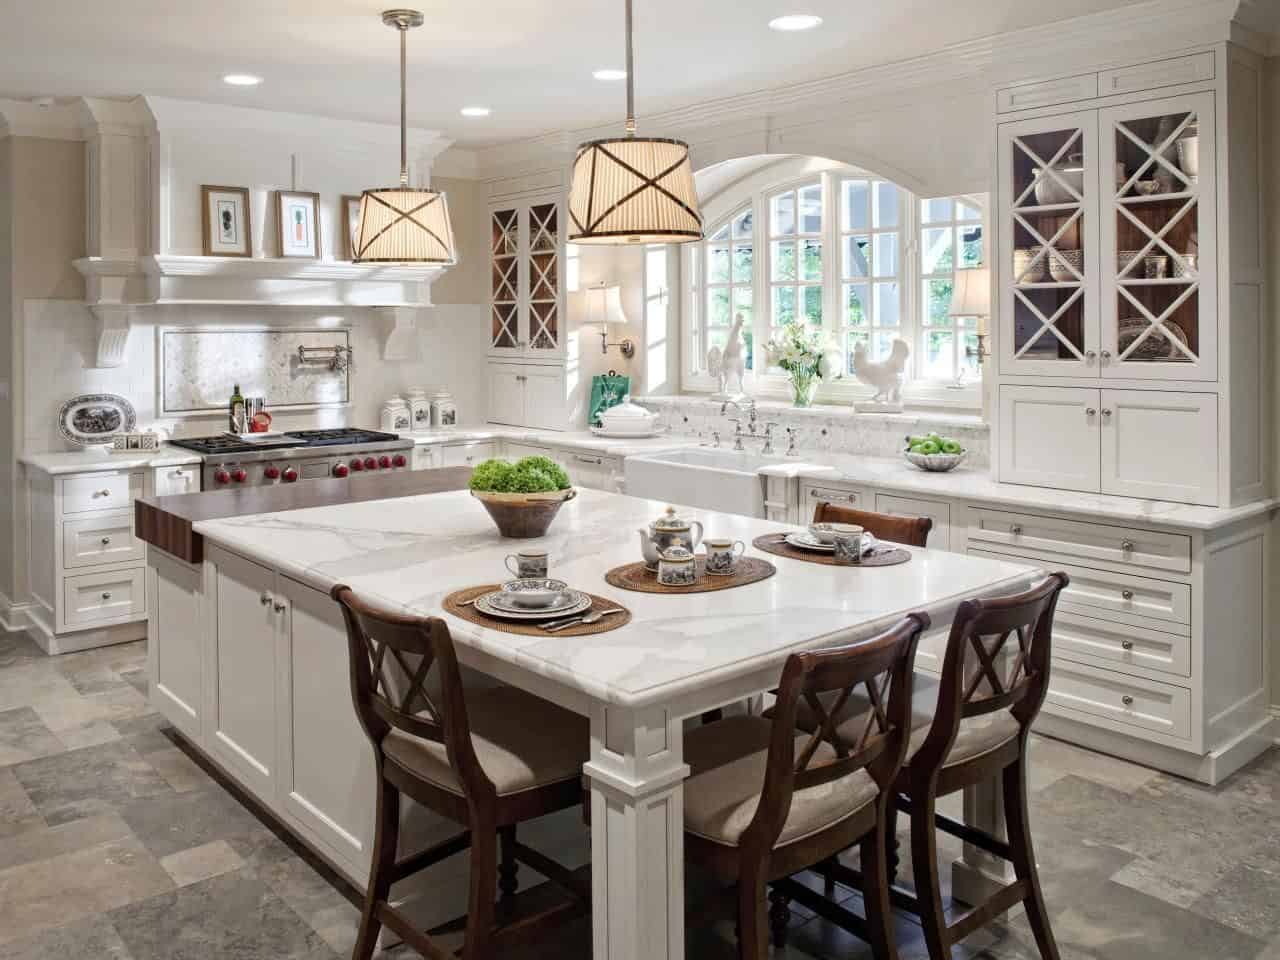 multitasking kitchen island